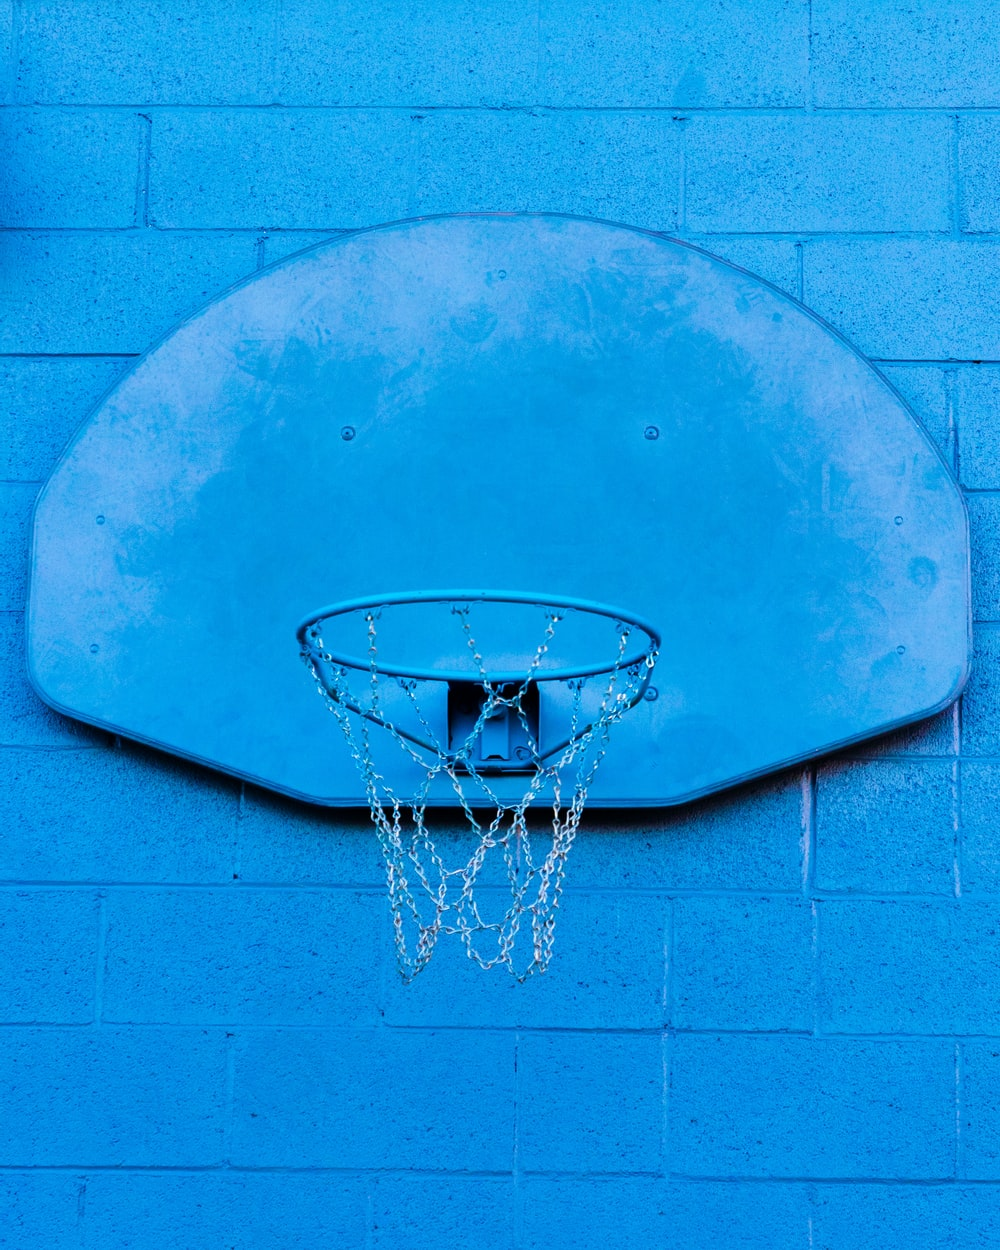 blue and gray basketball hoop